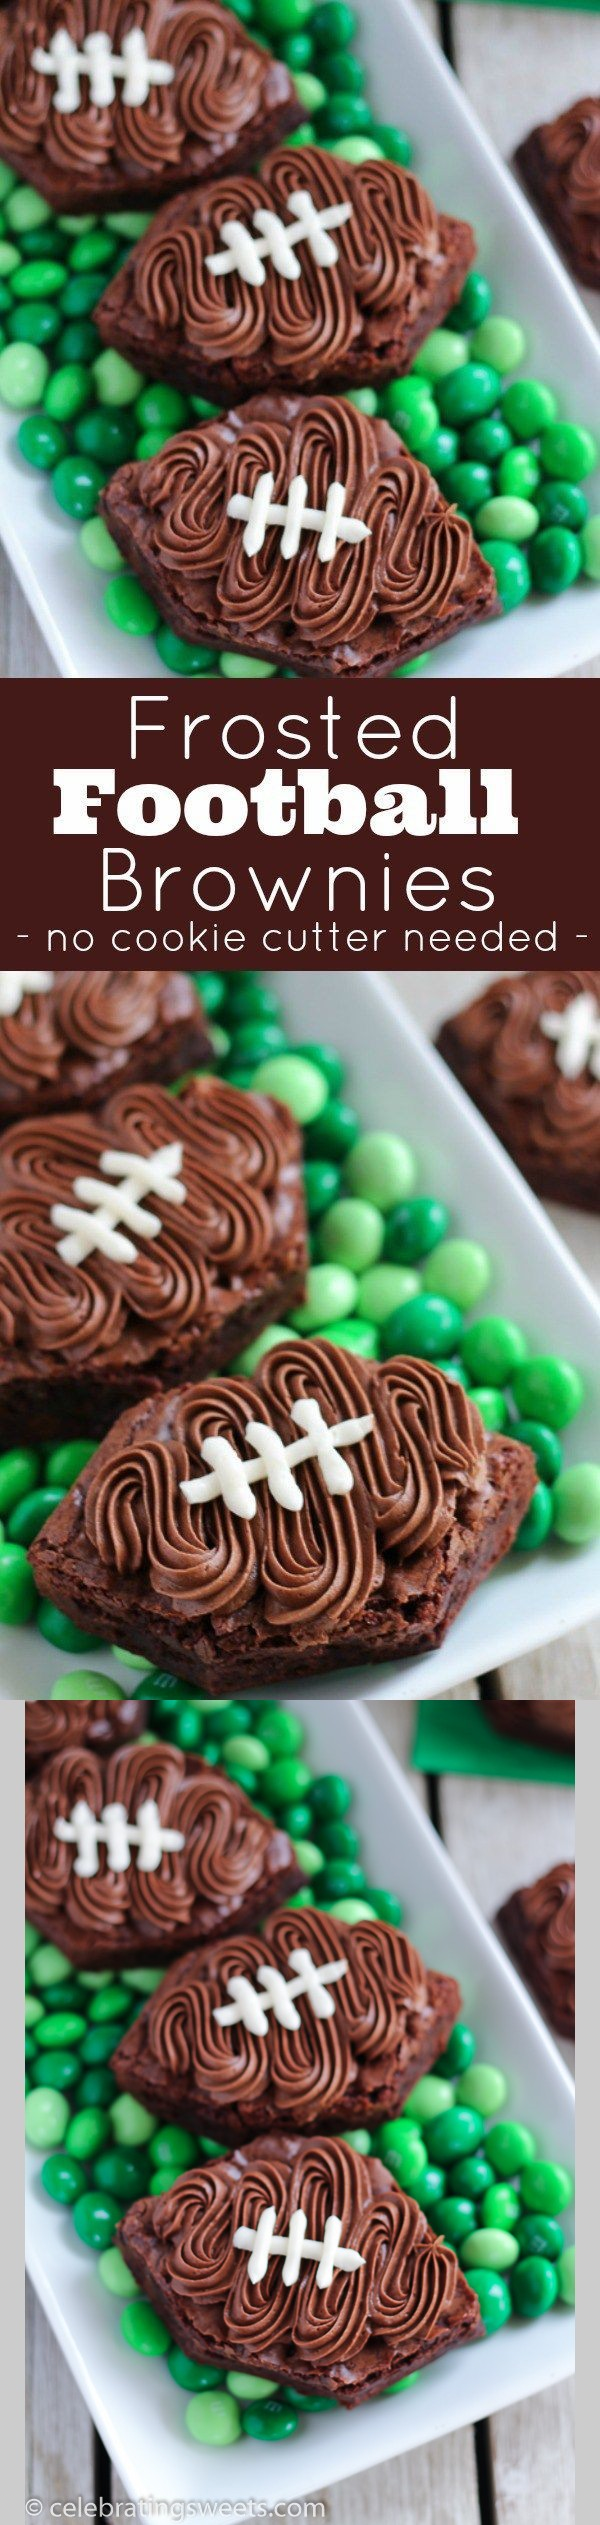 Frosted Football Brownies